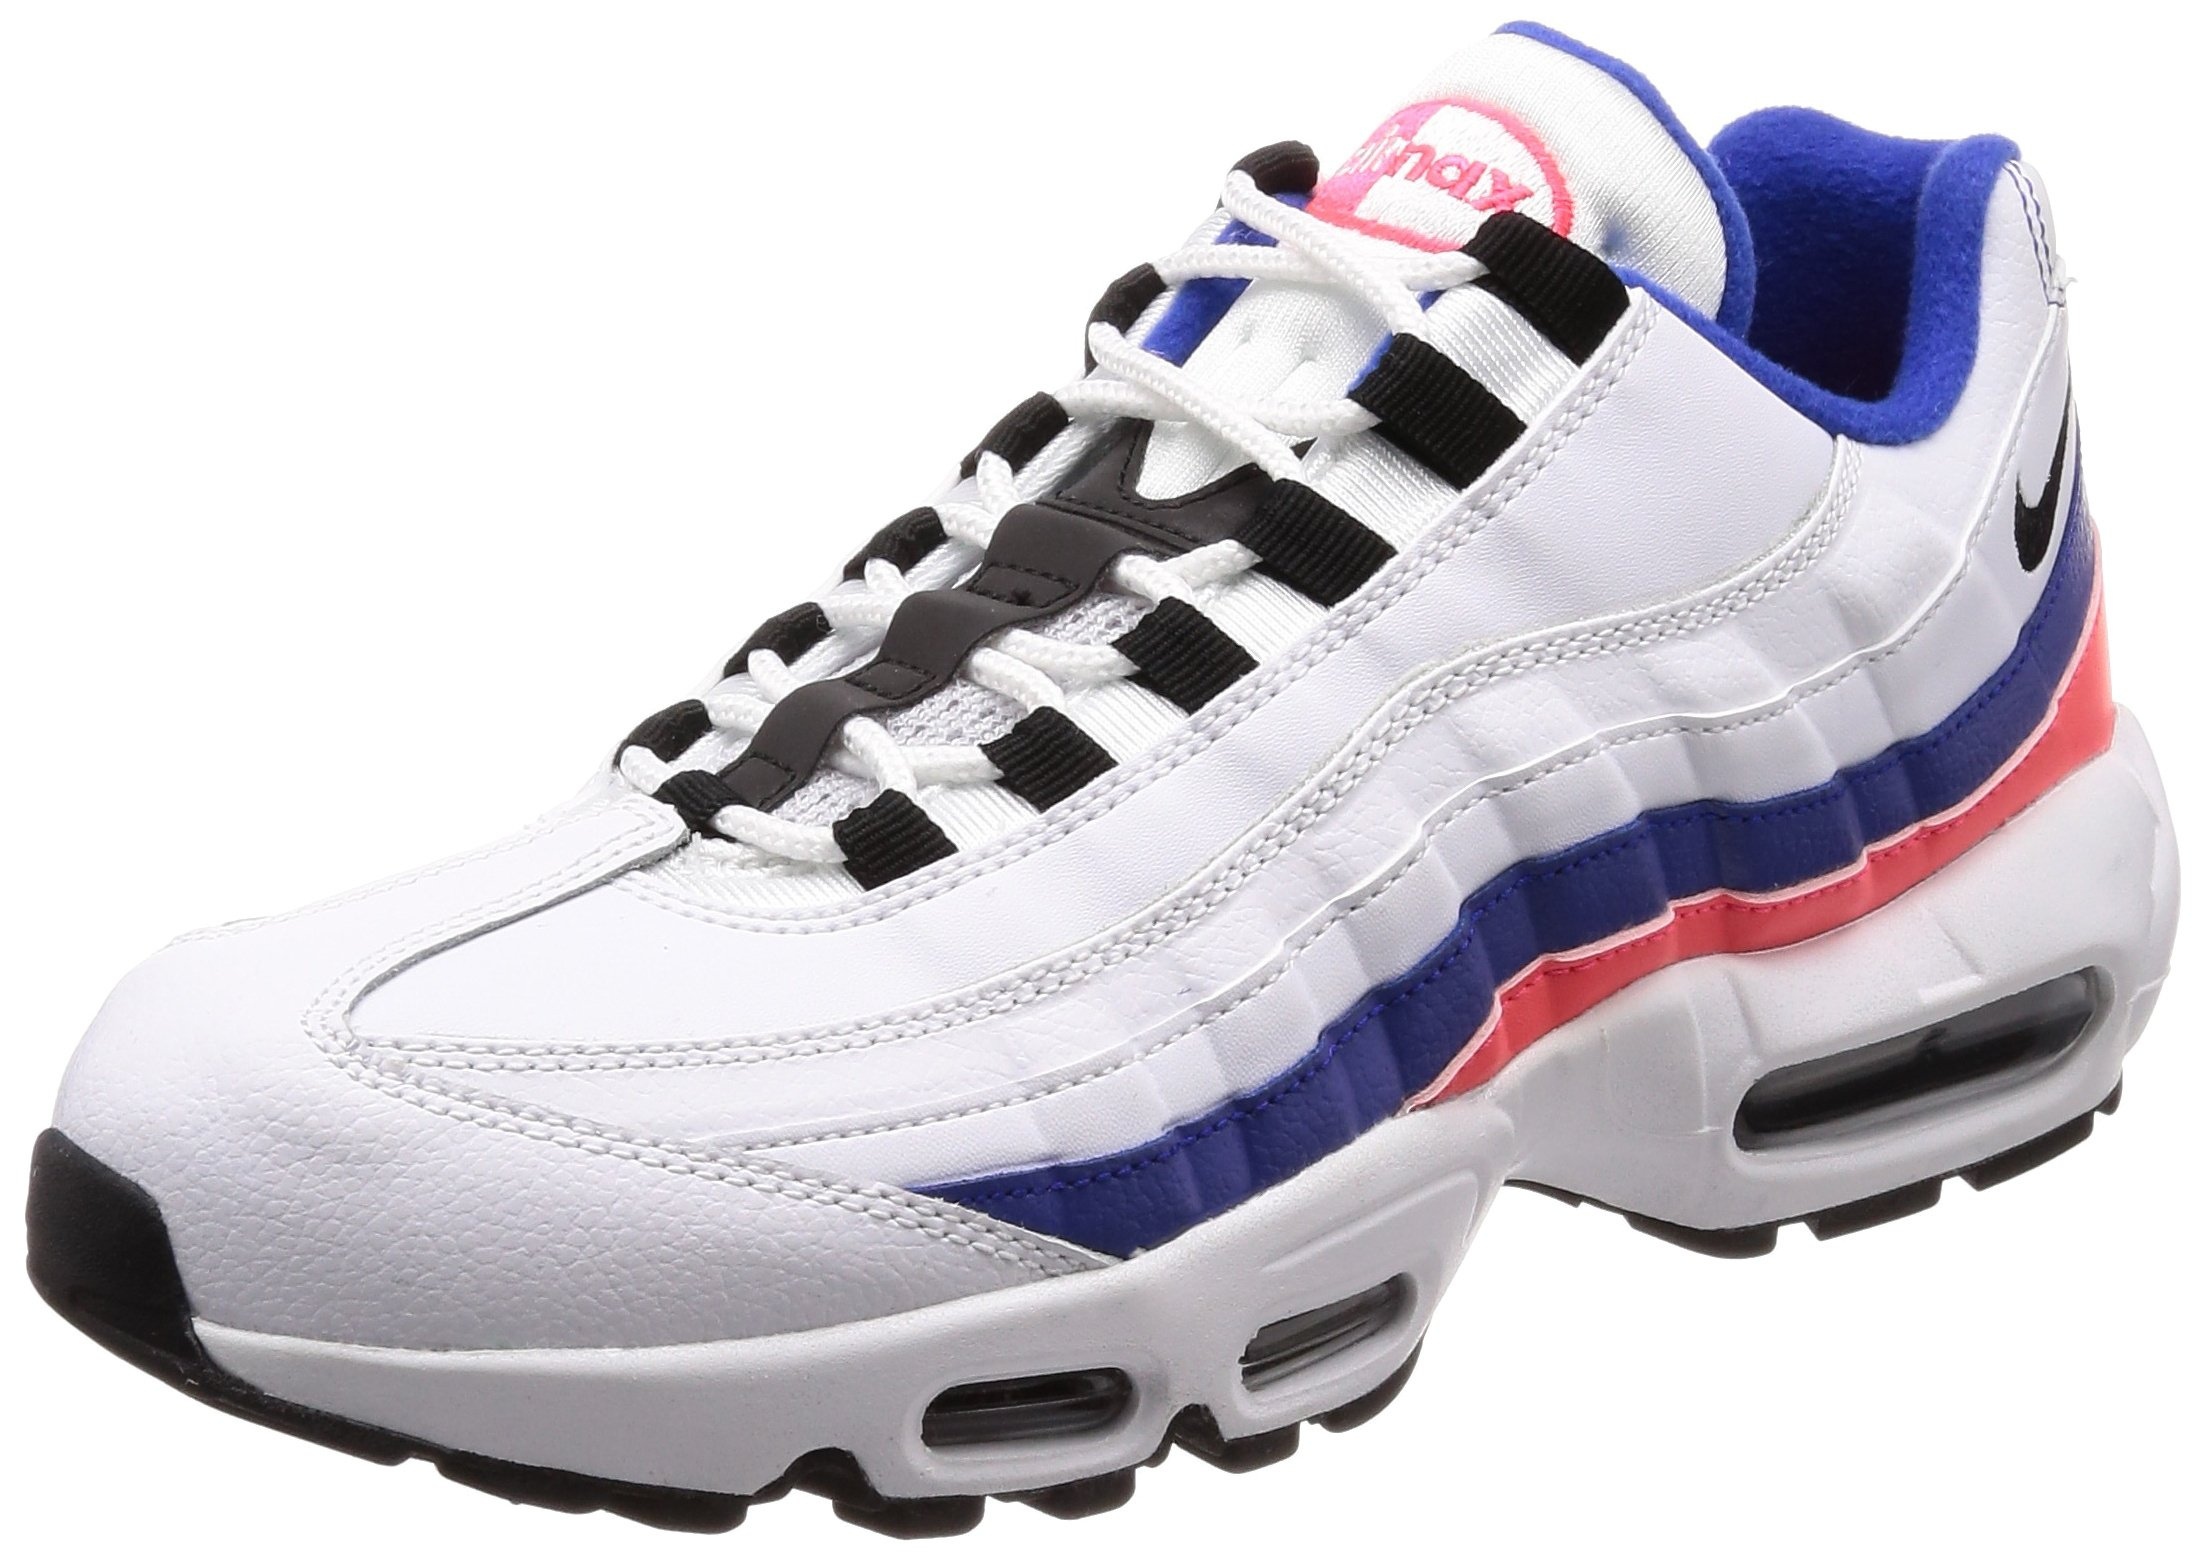 promo code 5a962 c6d0d Galleon - NIKE Air Max 95 Essential Mens Style  749766-106 Size  7